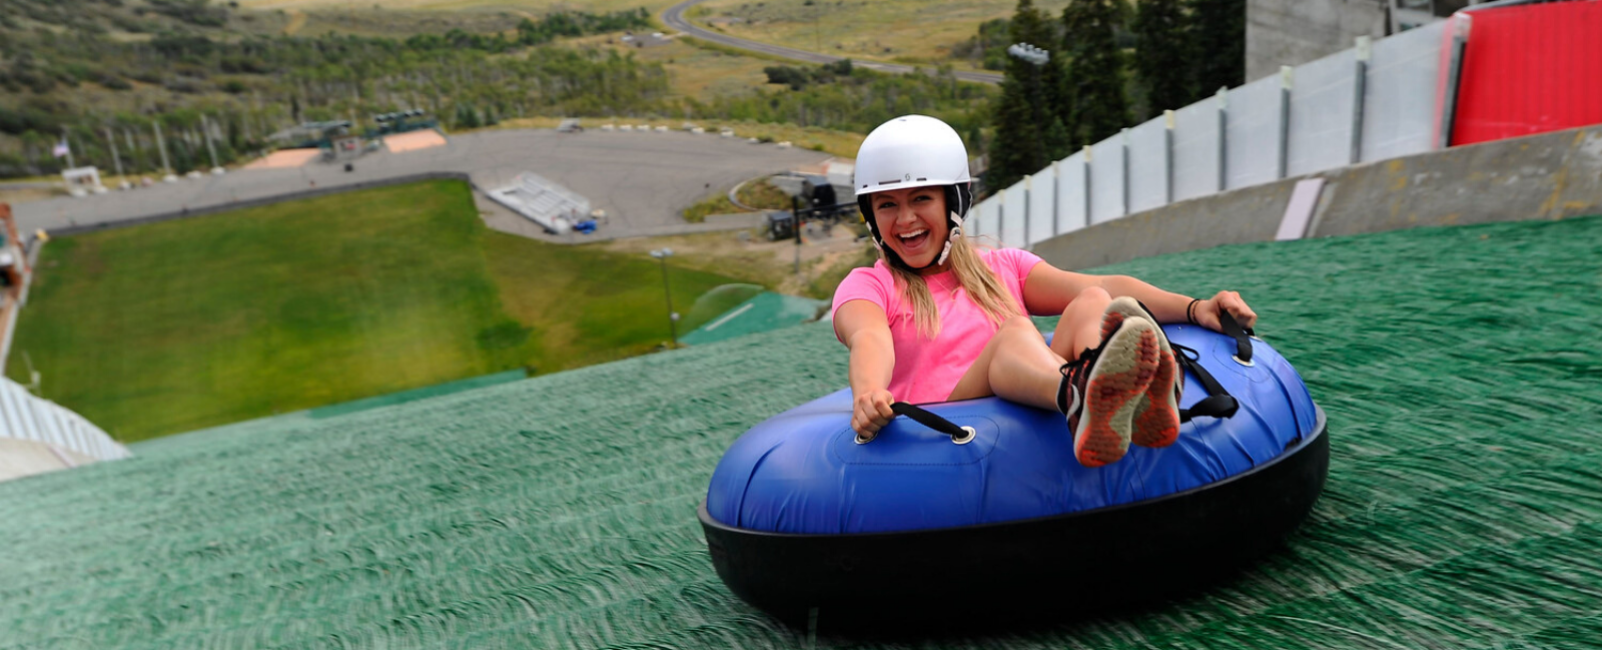 Summer Bucket List for Teens in Utah's Wasatch Back